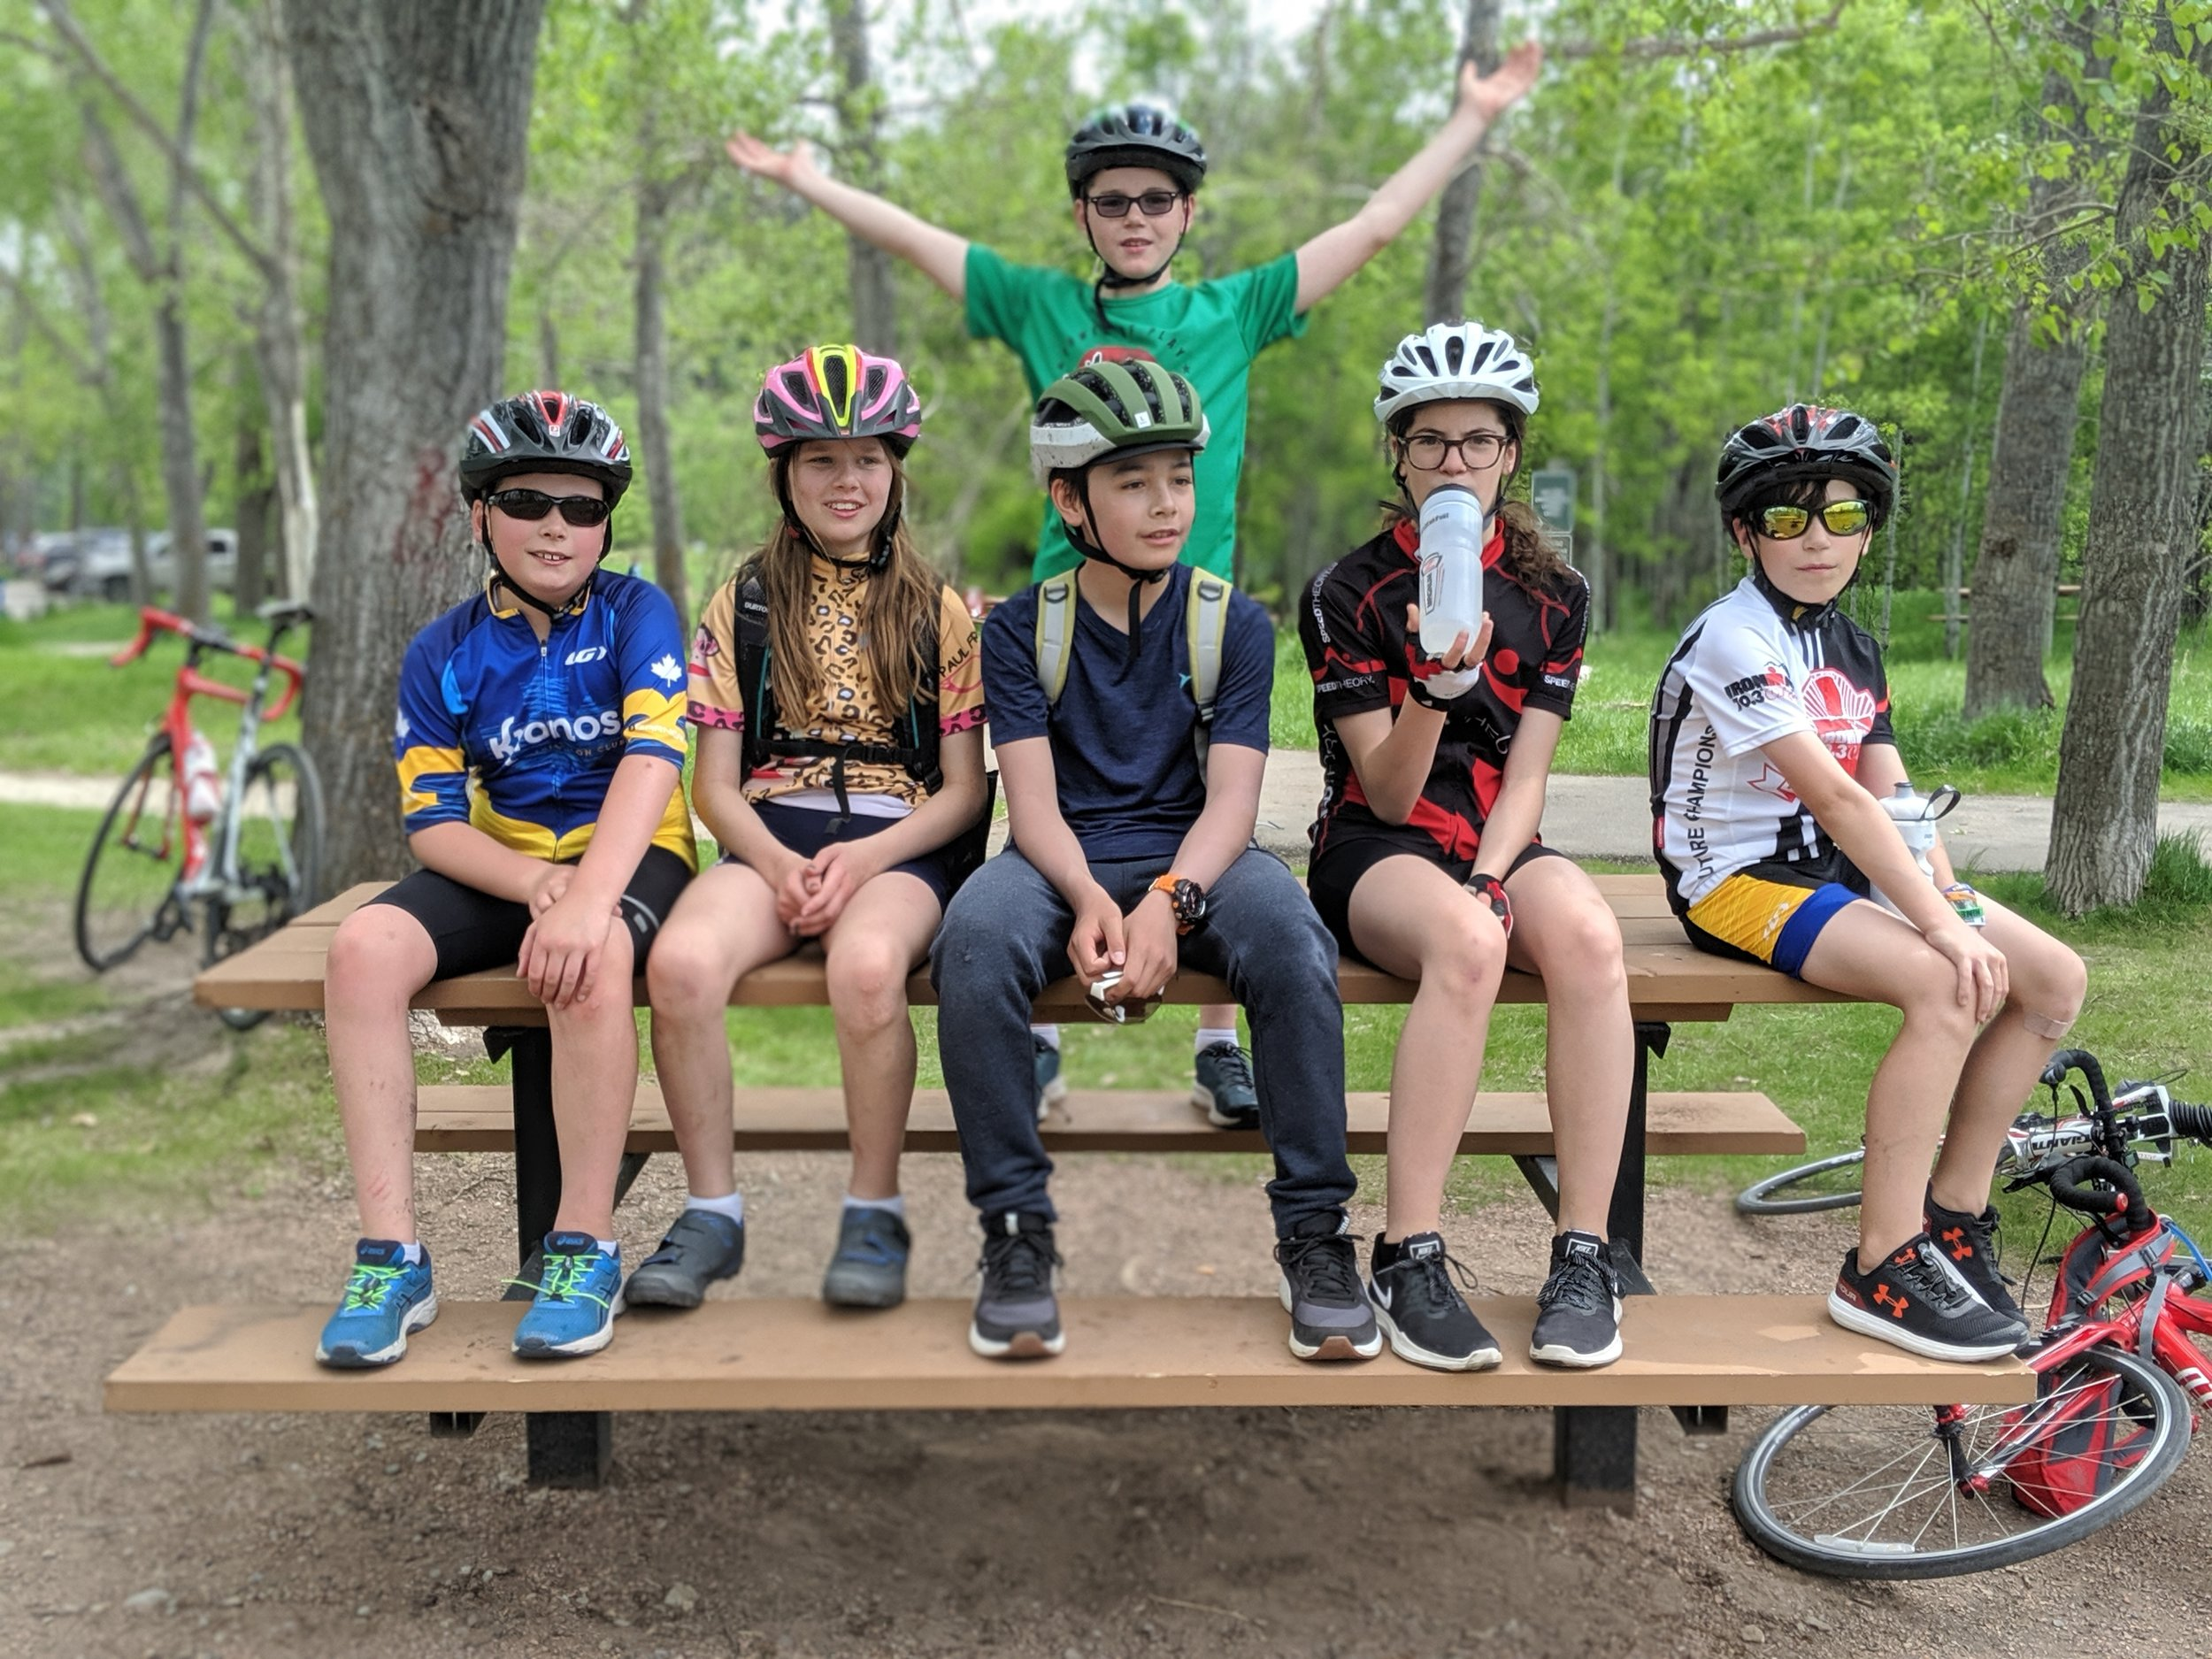 Mid Ride Spring Camp 2019